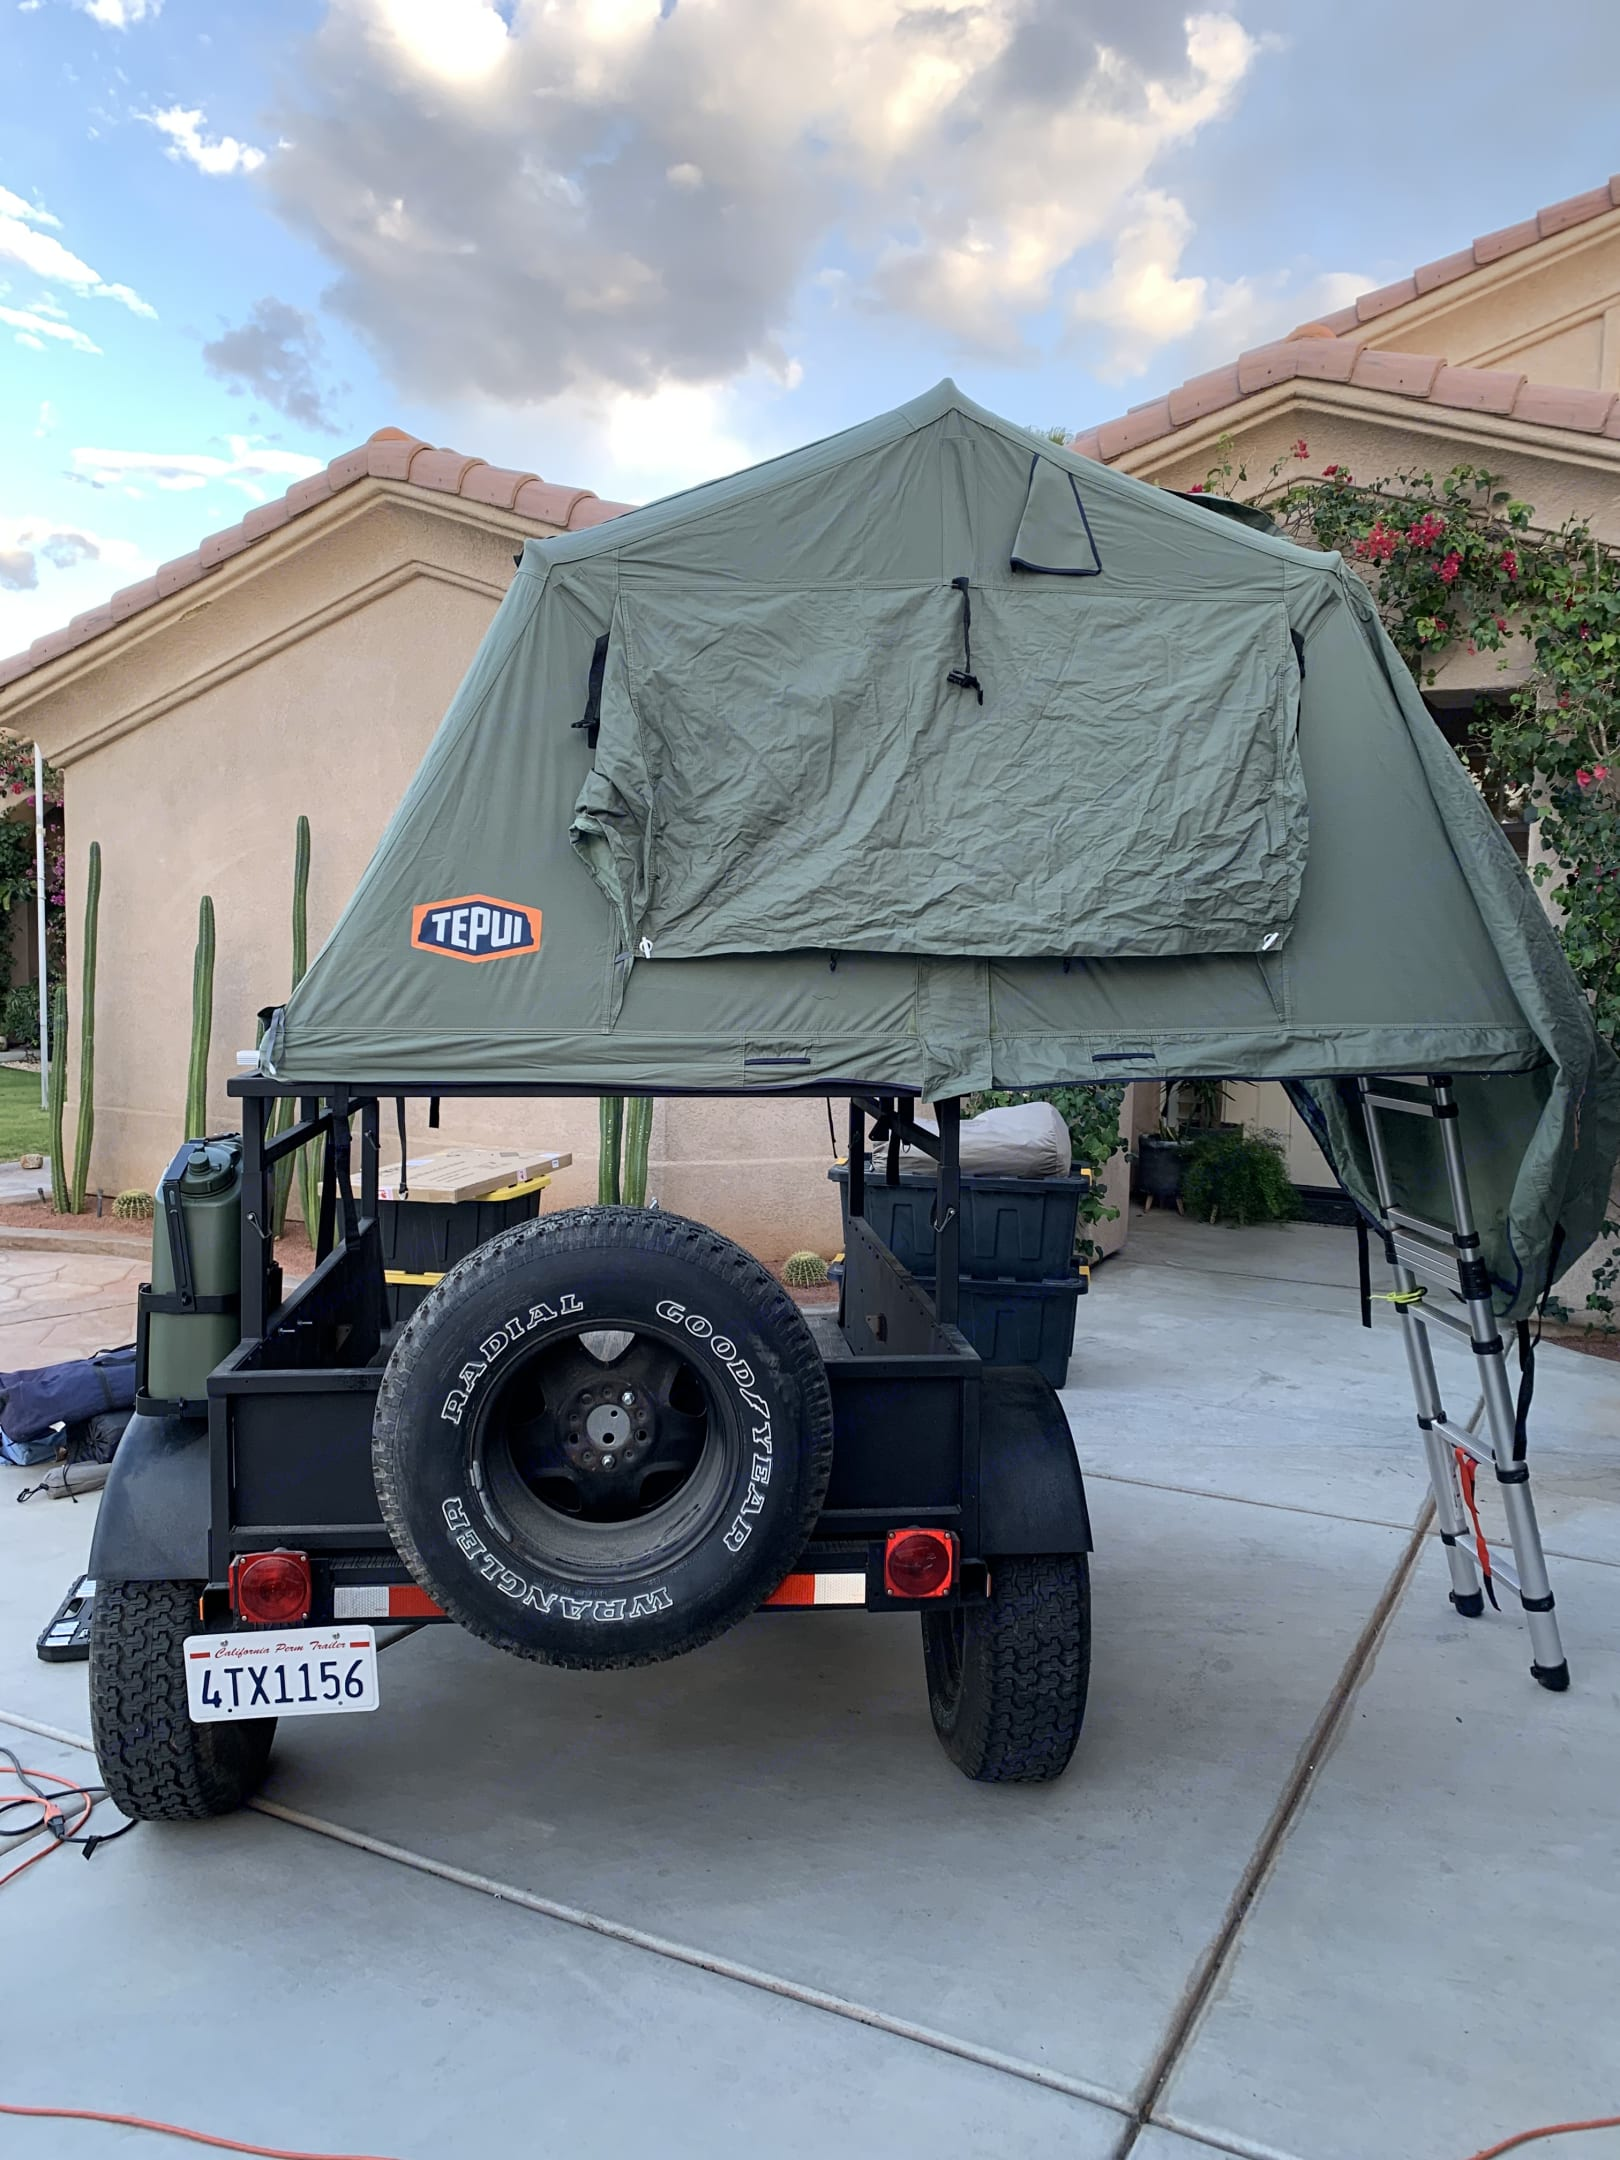 Tepui Double Rooftop Tenet extended with Ladder. Tepui Rooftop Tenet Overland -Utility 2020